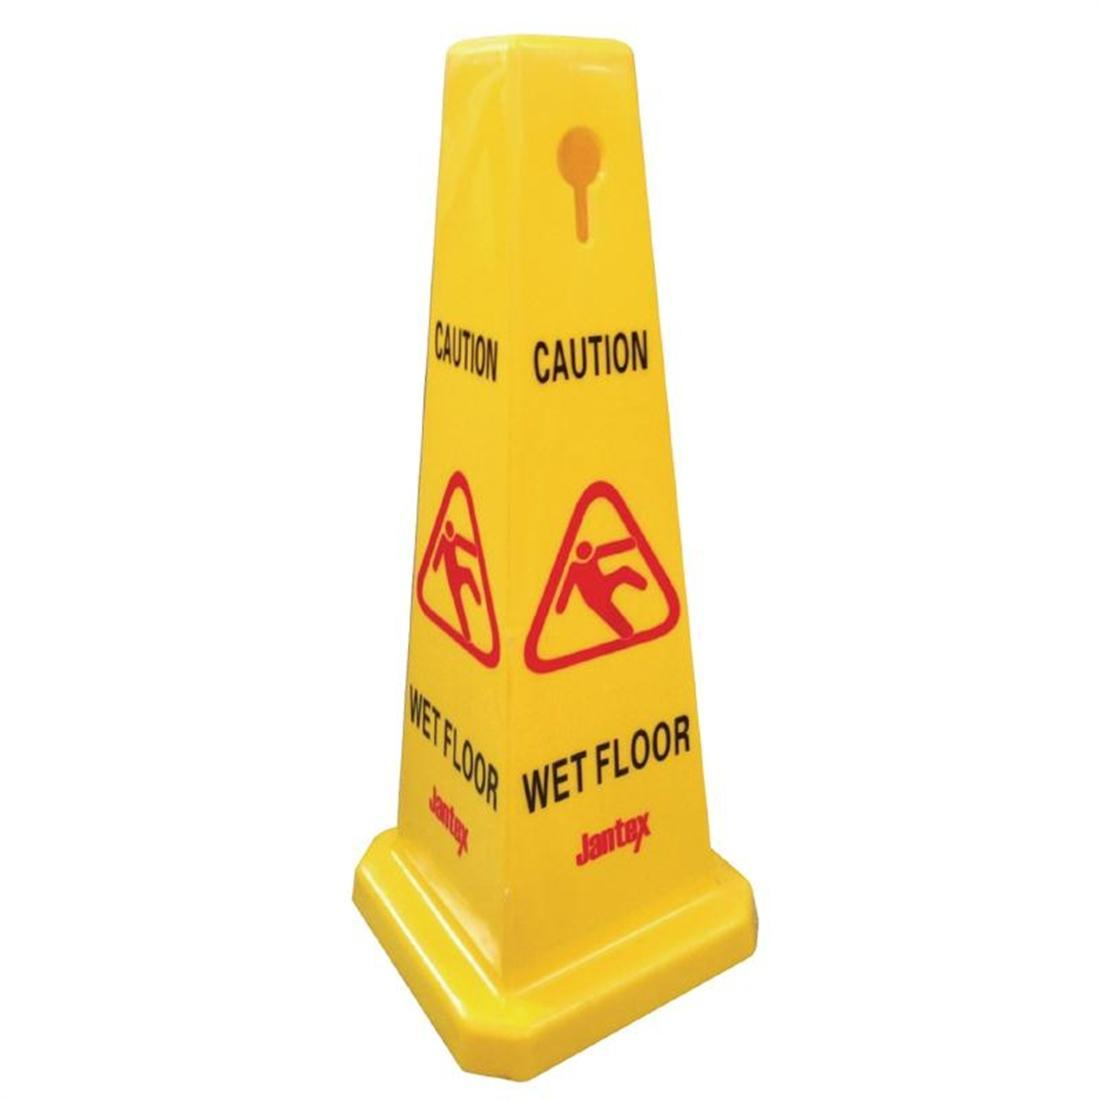 Jantex Cone Wet Floor Safety Sign